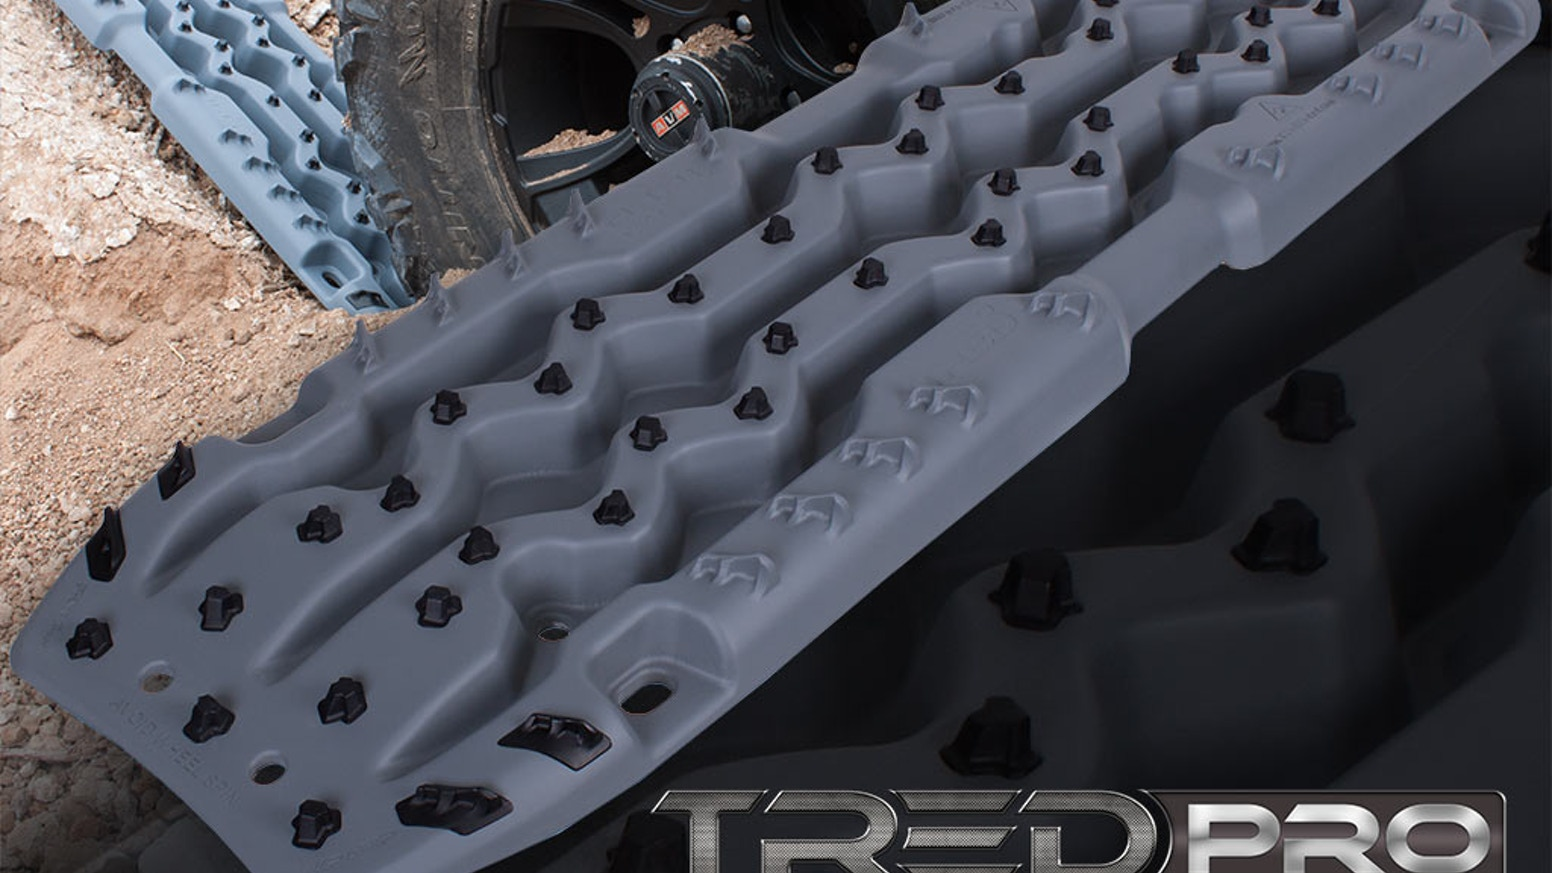 Tred Pro Total Recovery Extraction Device For Your 4x4 By Evolve 1100 Special Field World39s Largest Supplier Of Firearm Accessories Is The Worlds Most Advanced All In One Off Road